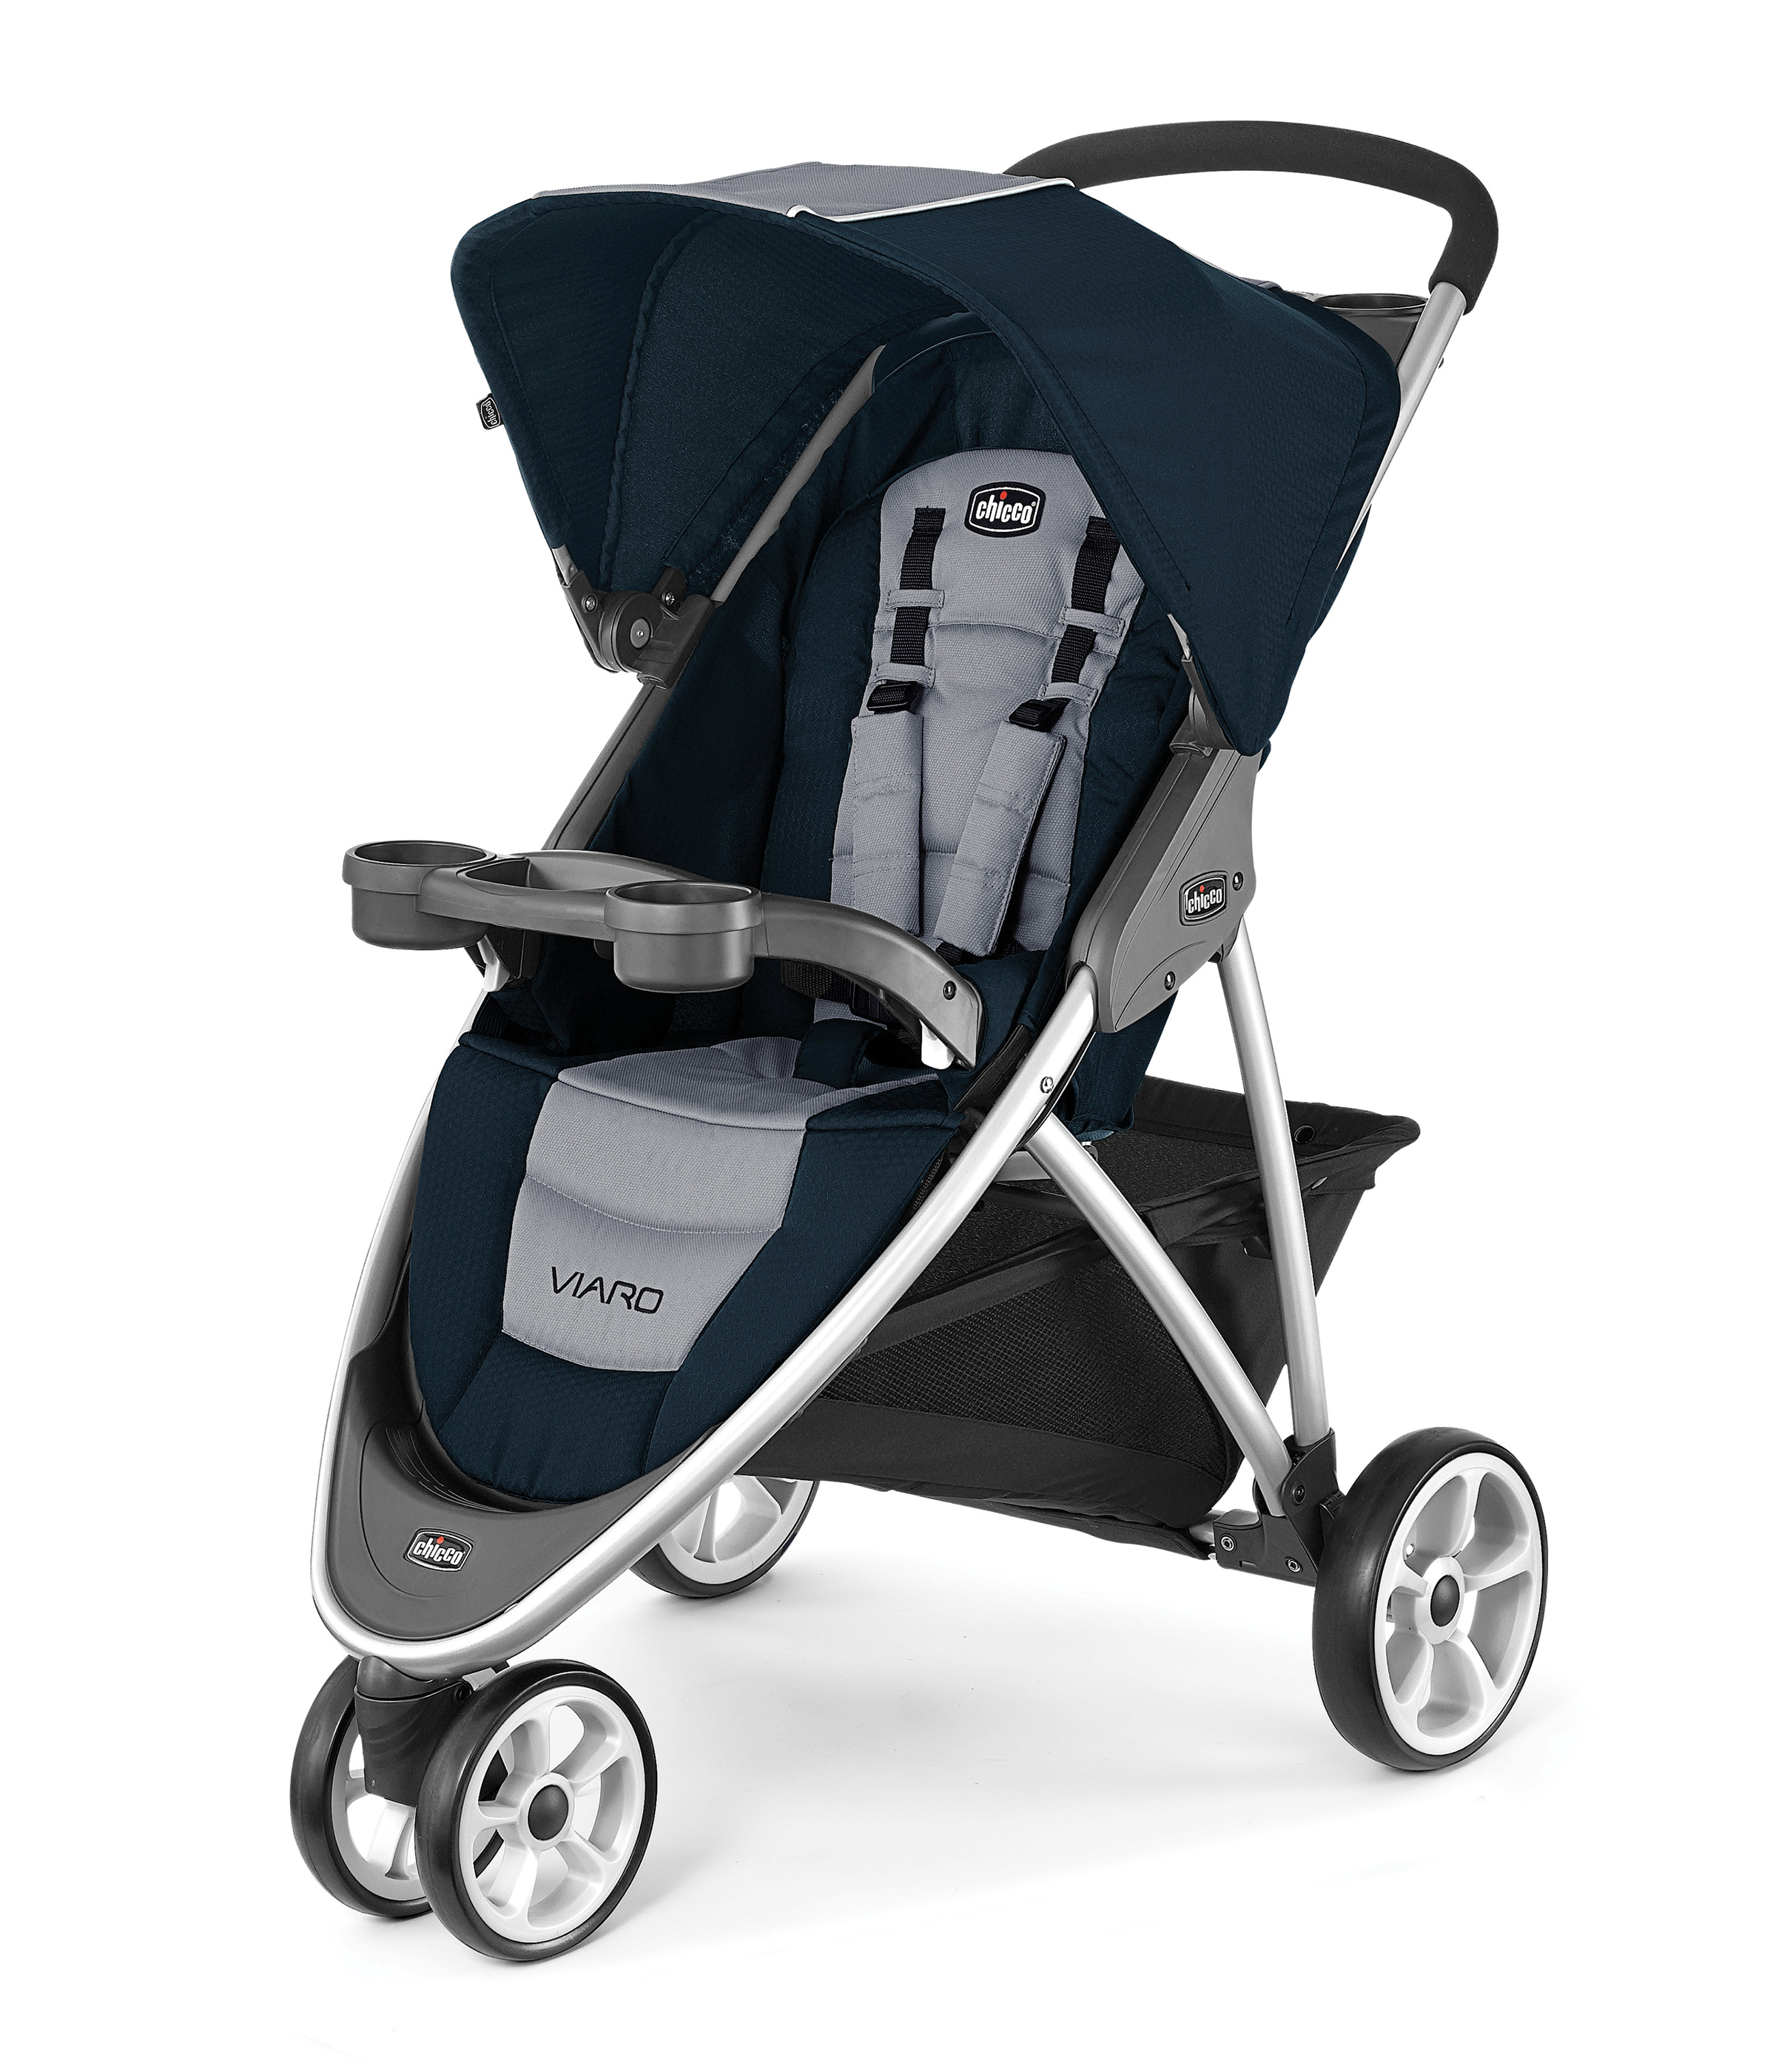 Viaro Quick-Fold Stroller - Regatta in Regatta